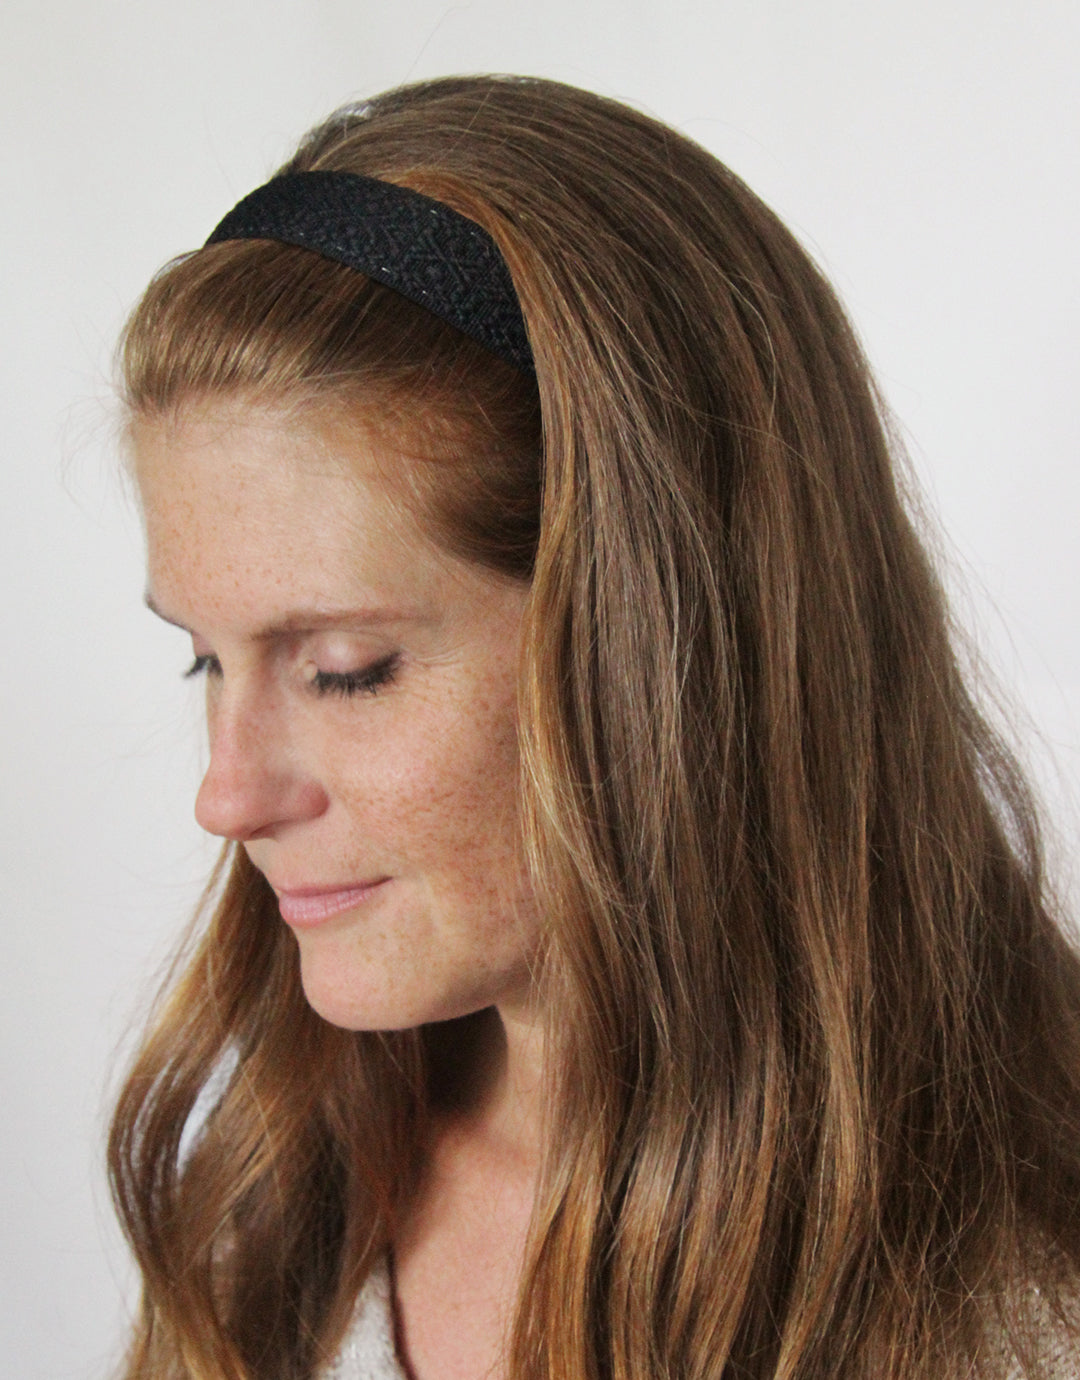 "Black Solid Geometric - Original 1"" Headband"